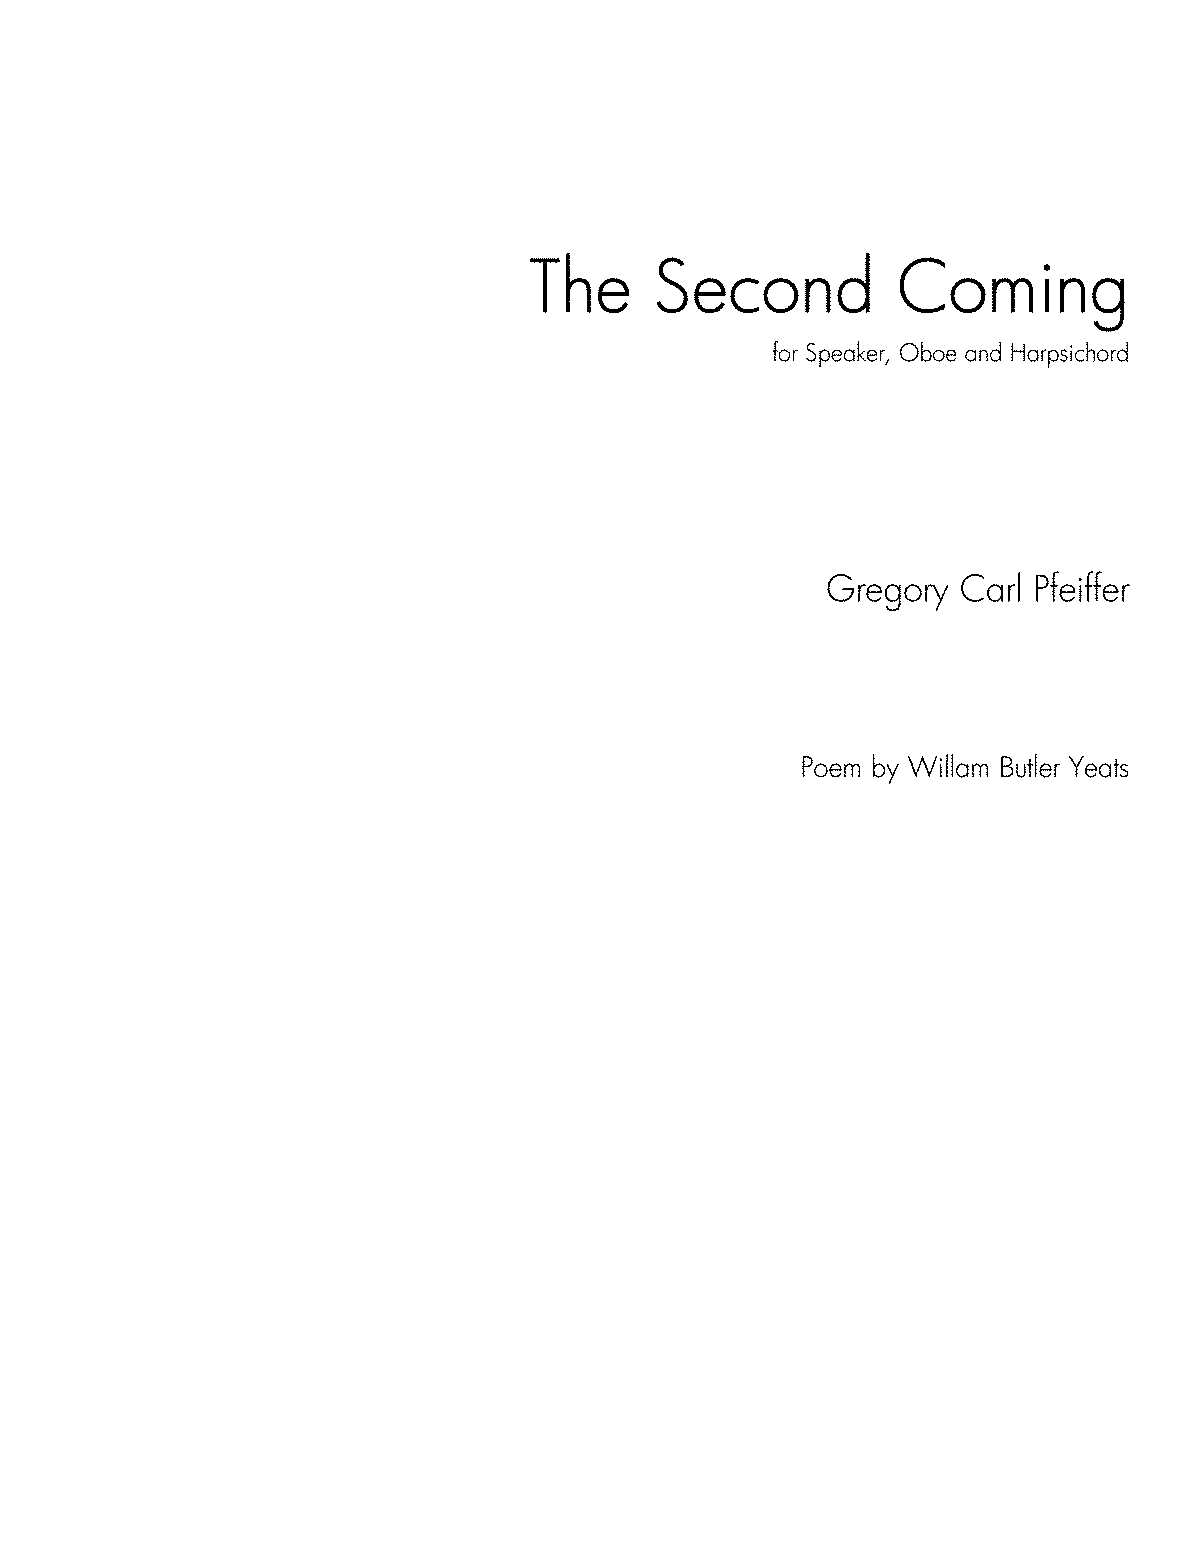 PMLP312850-The Second Coming - GC Pfeiffer.pdf